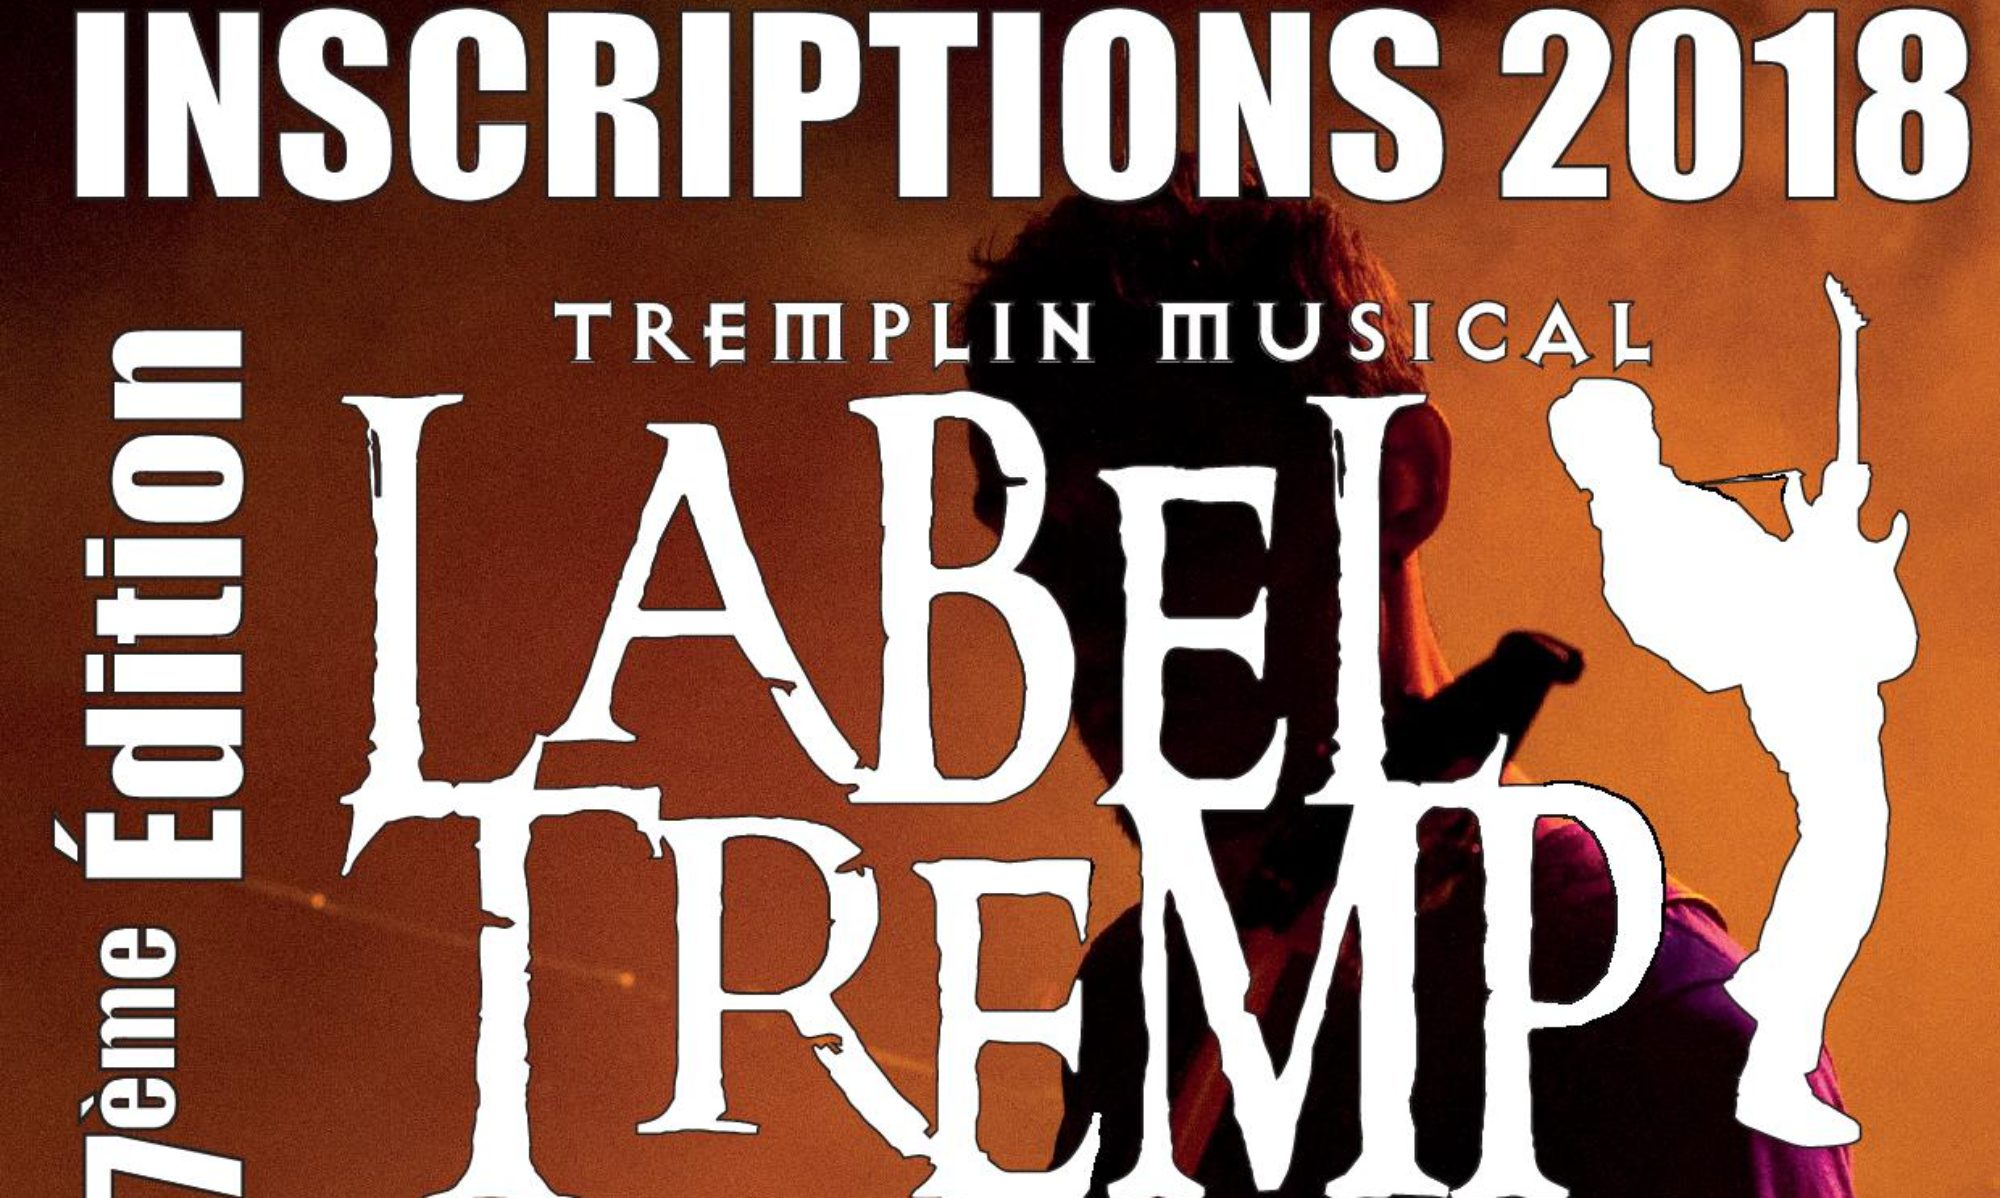 LABEL TREMP